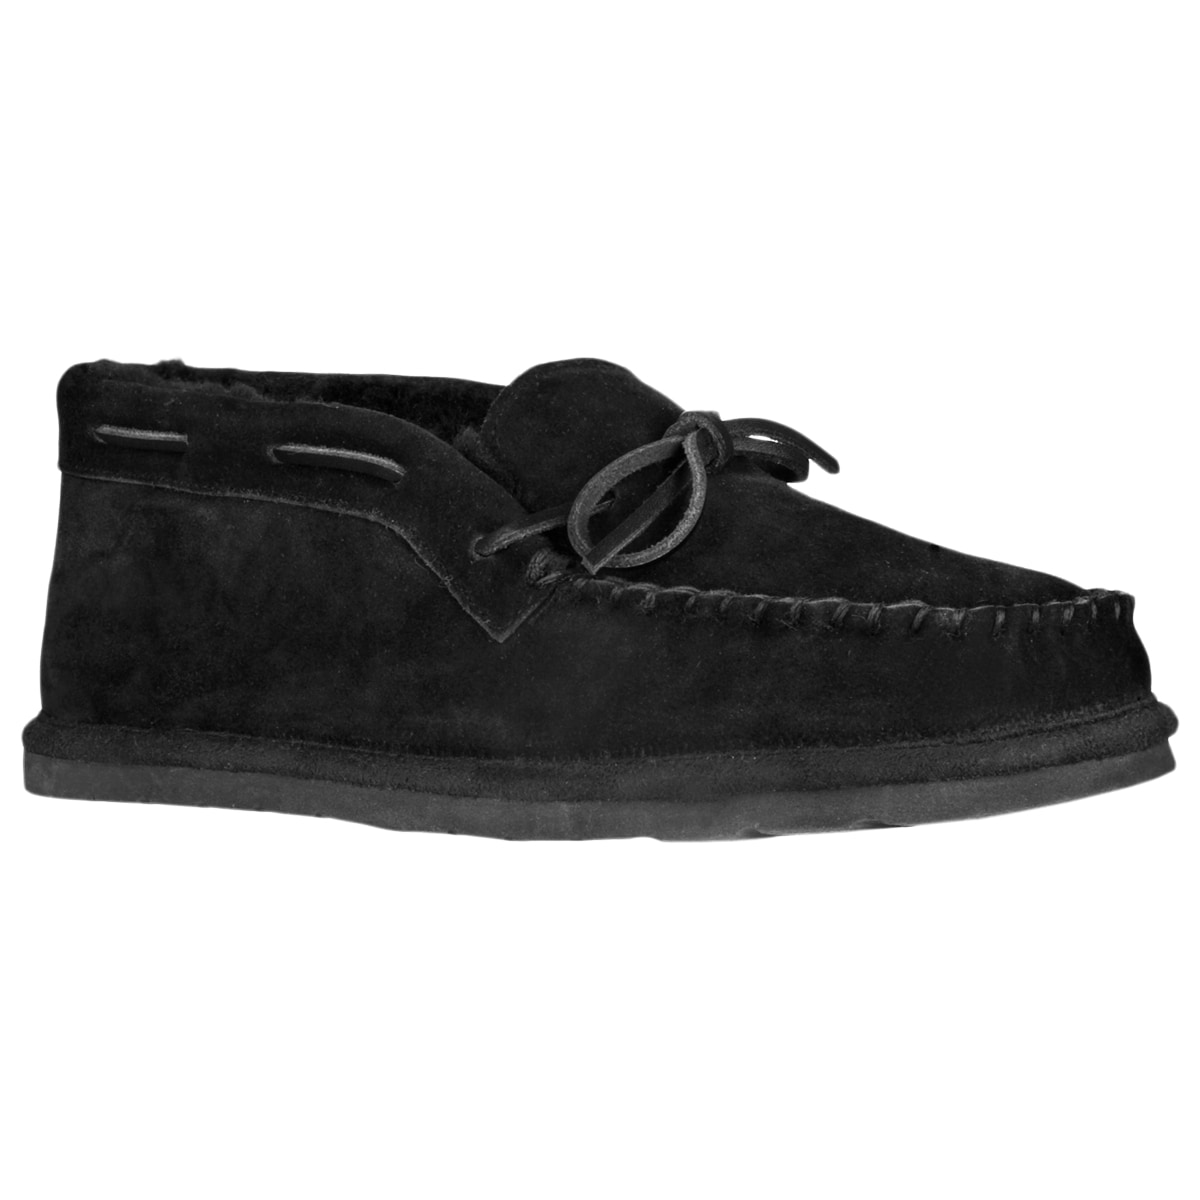 Lugz Men's 'Dudley' Suede Black Slippers - Thumbnail 0